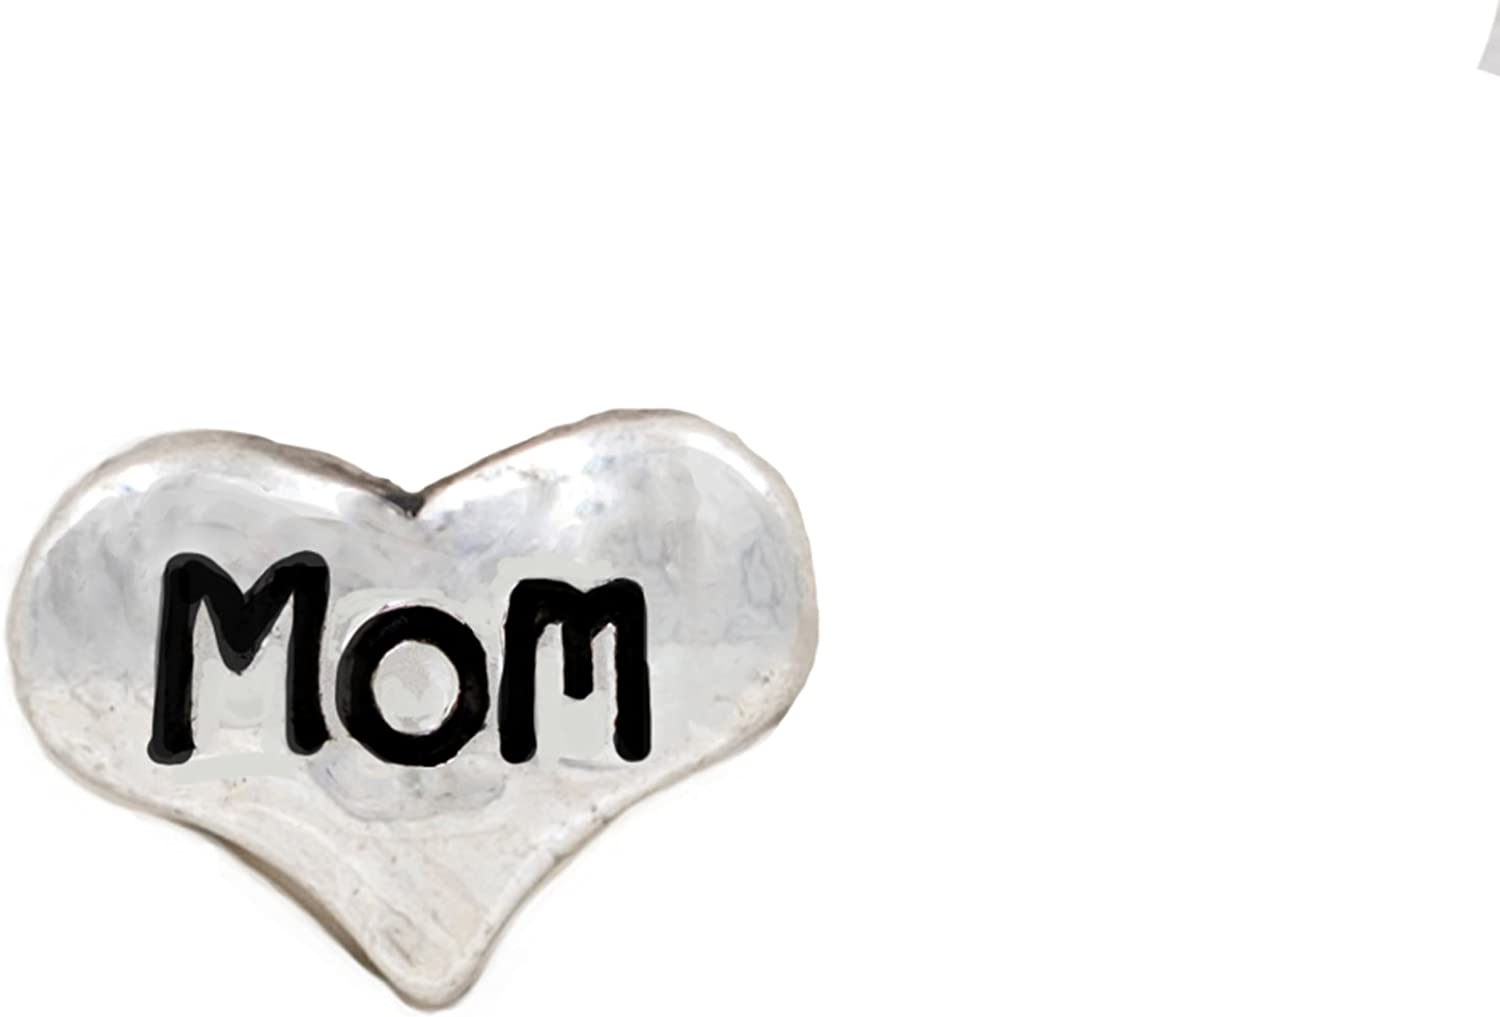 iPops Single Pack Mom Heart Fitbit/Apple Watch Band Charm